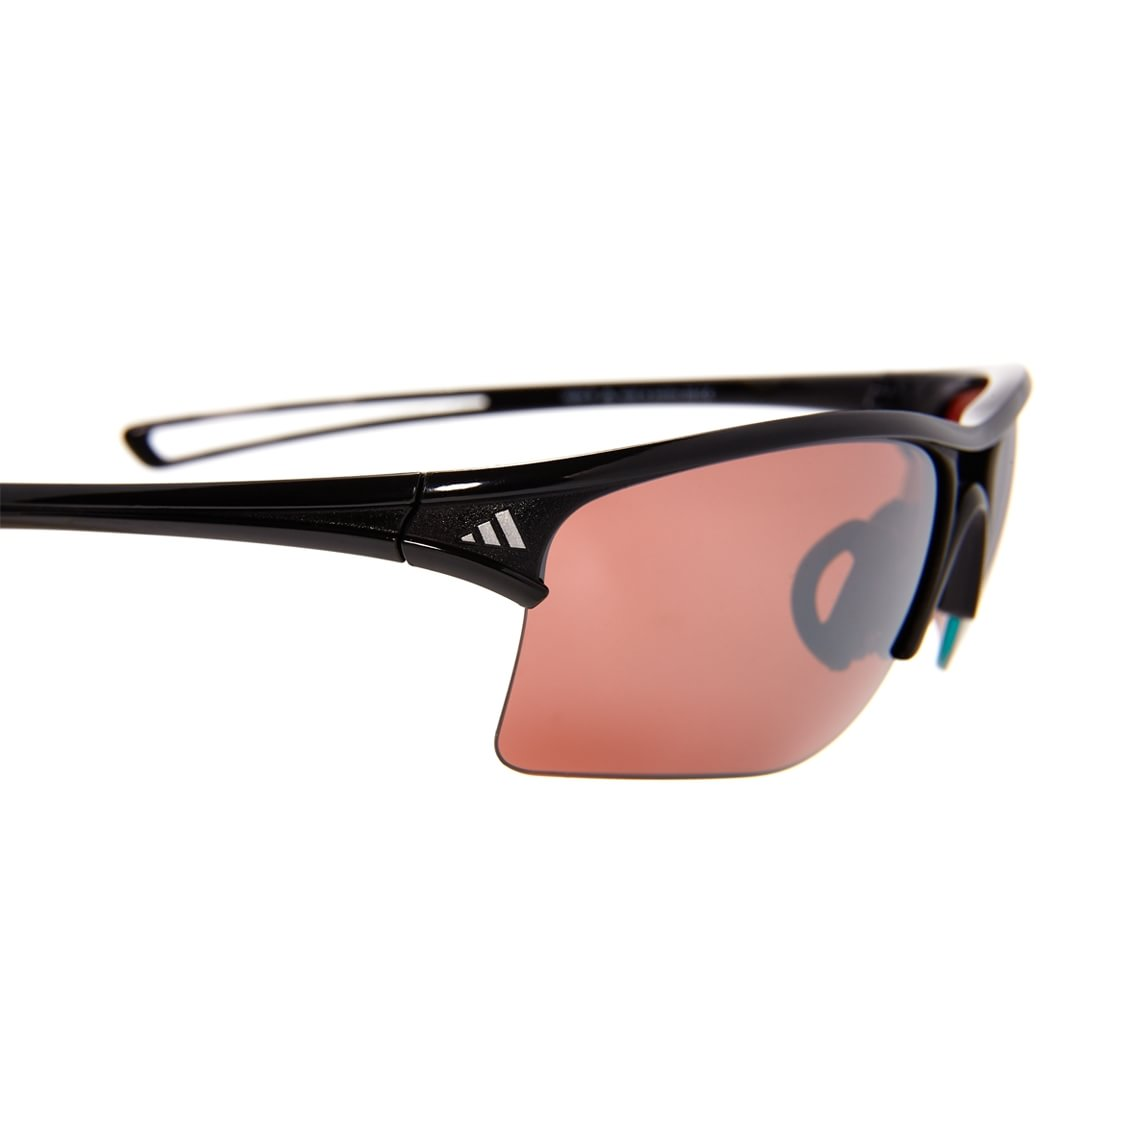 Adidas Raylor Small LST Polarized Silver A405 6059 6015